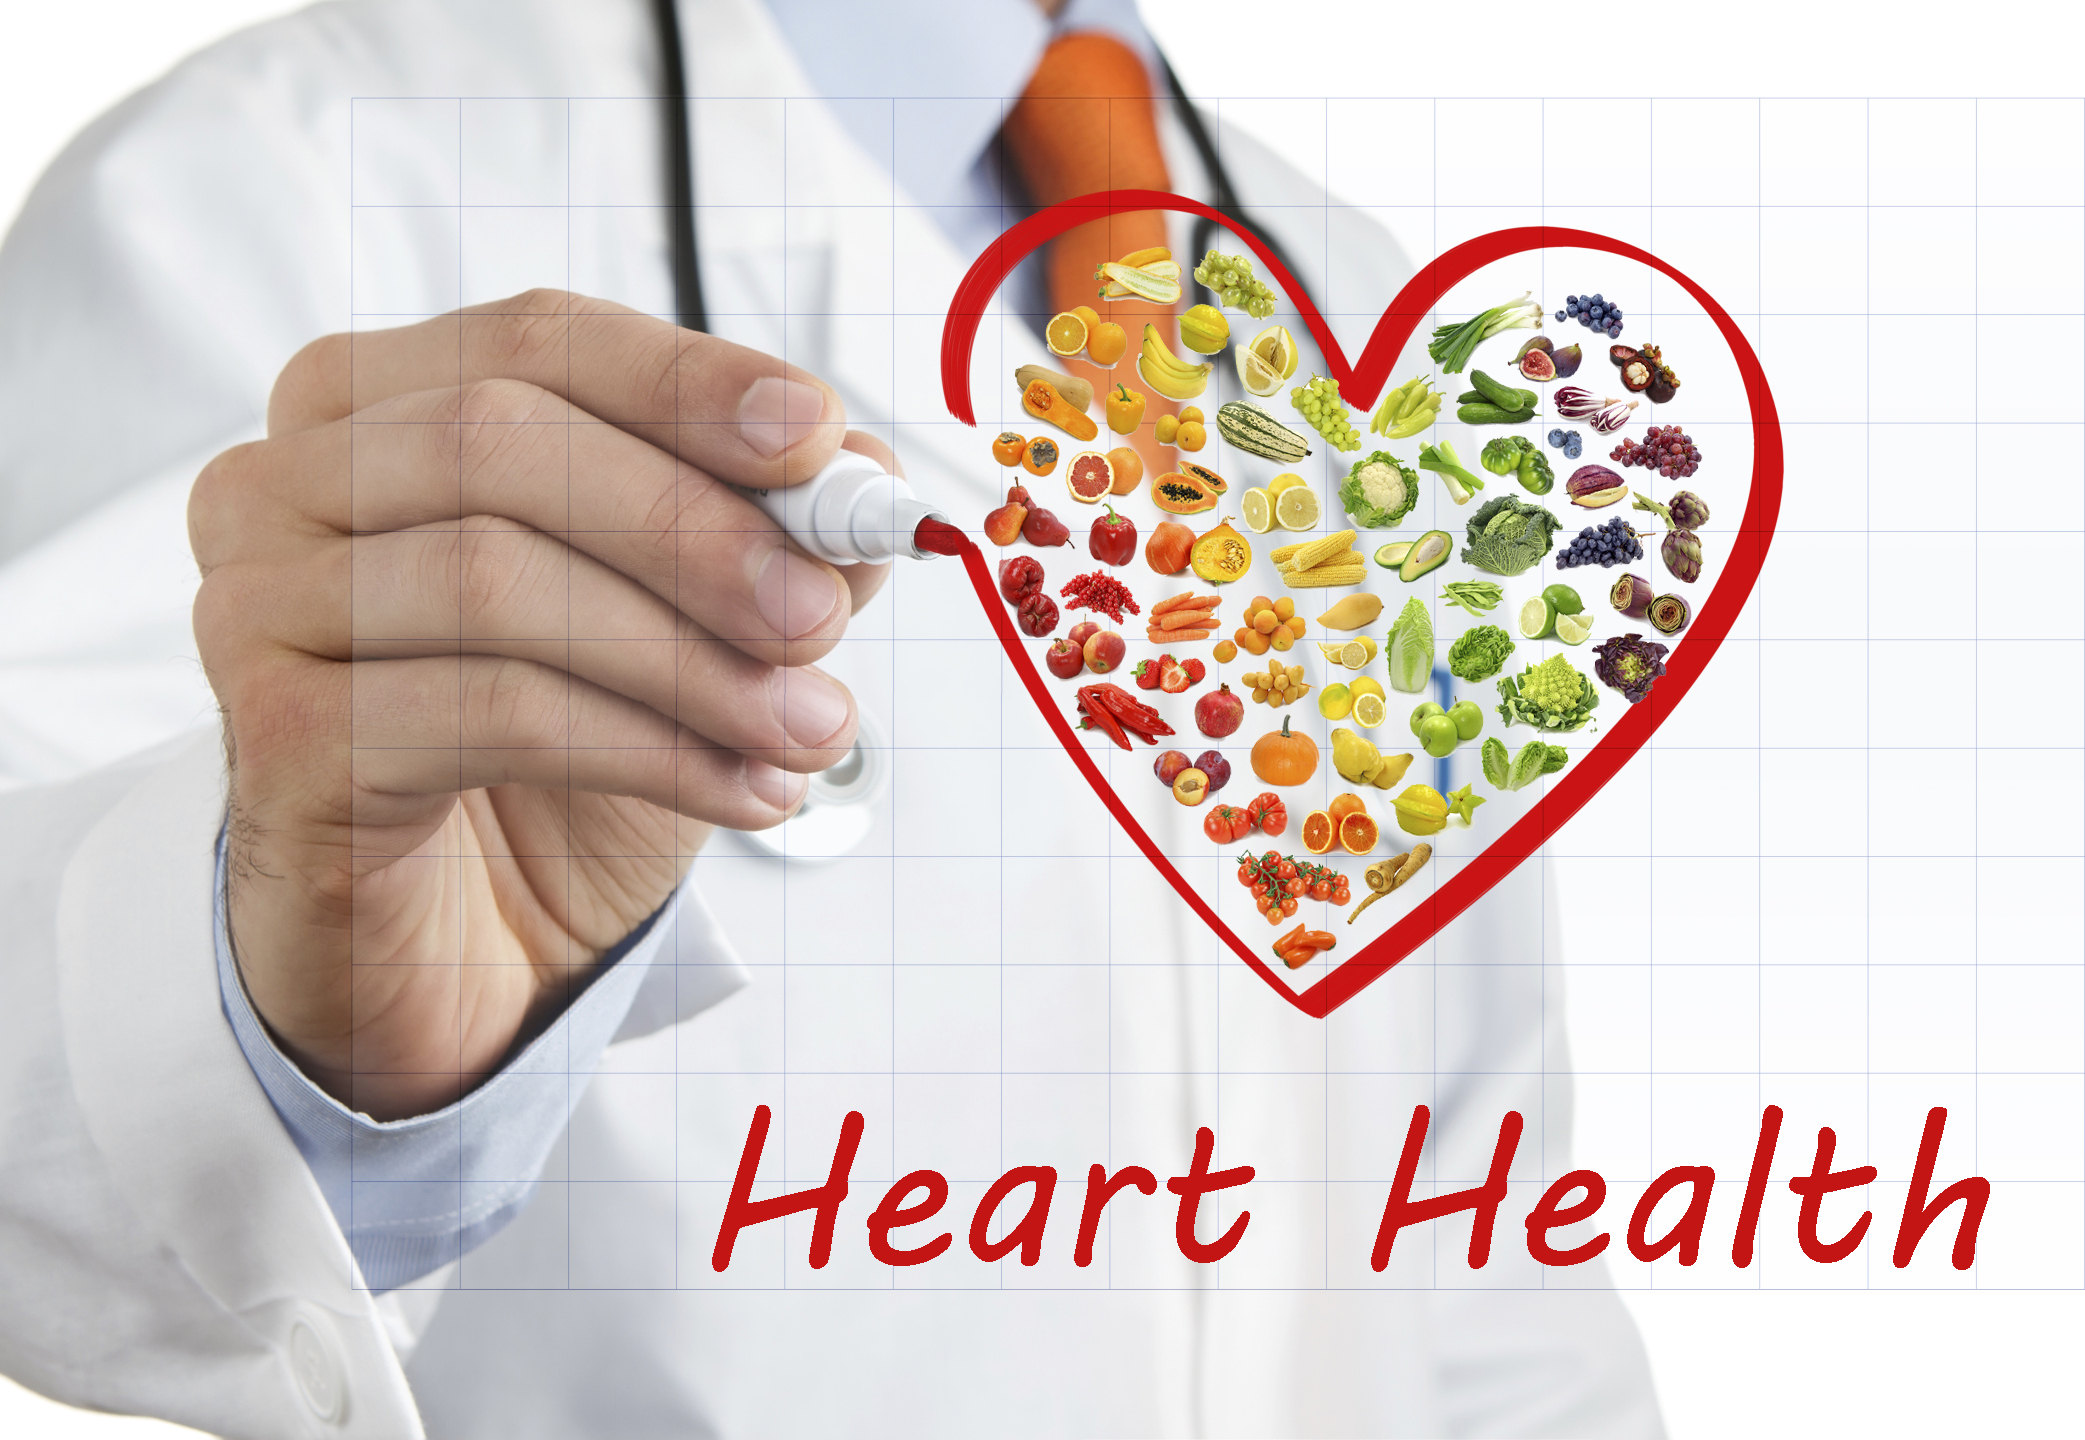 Doctor drawing heart symbol